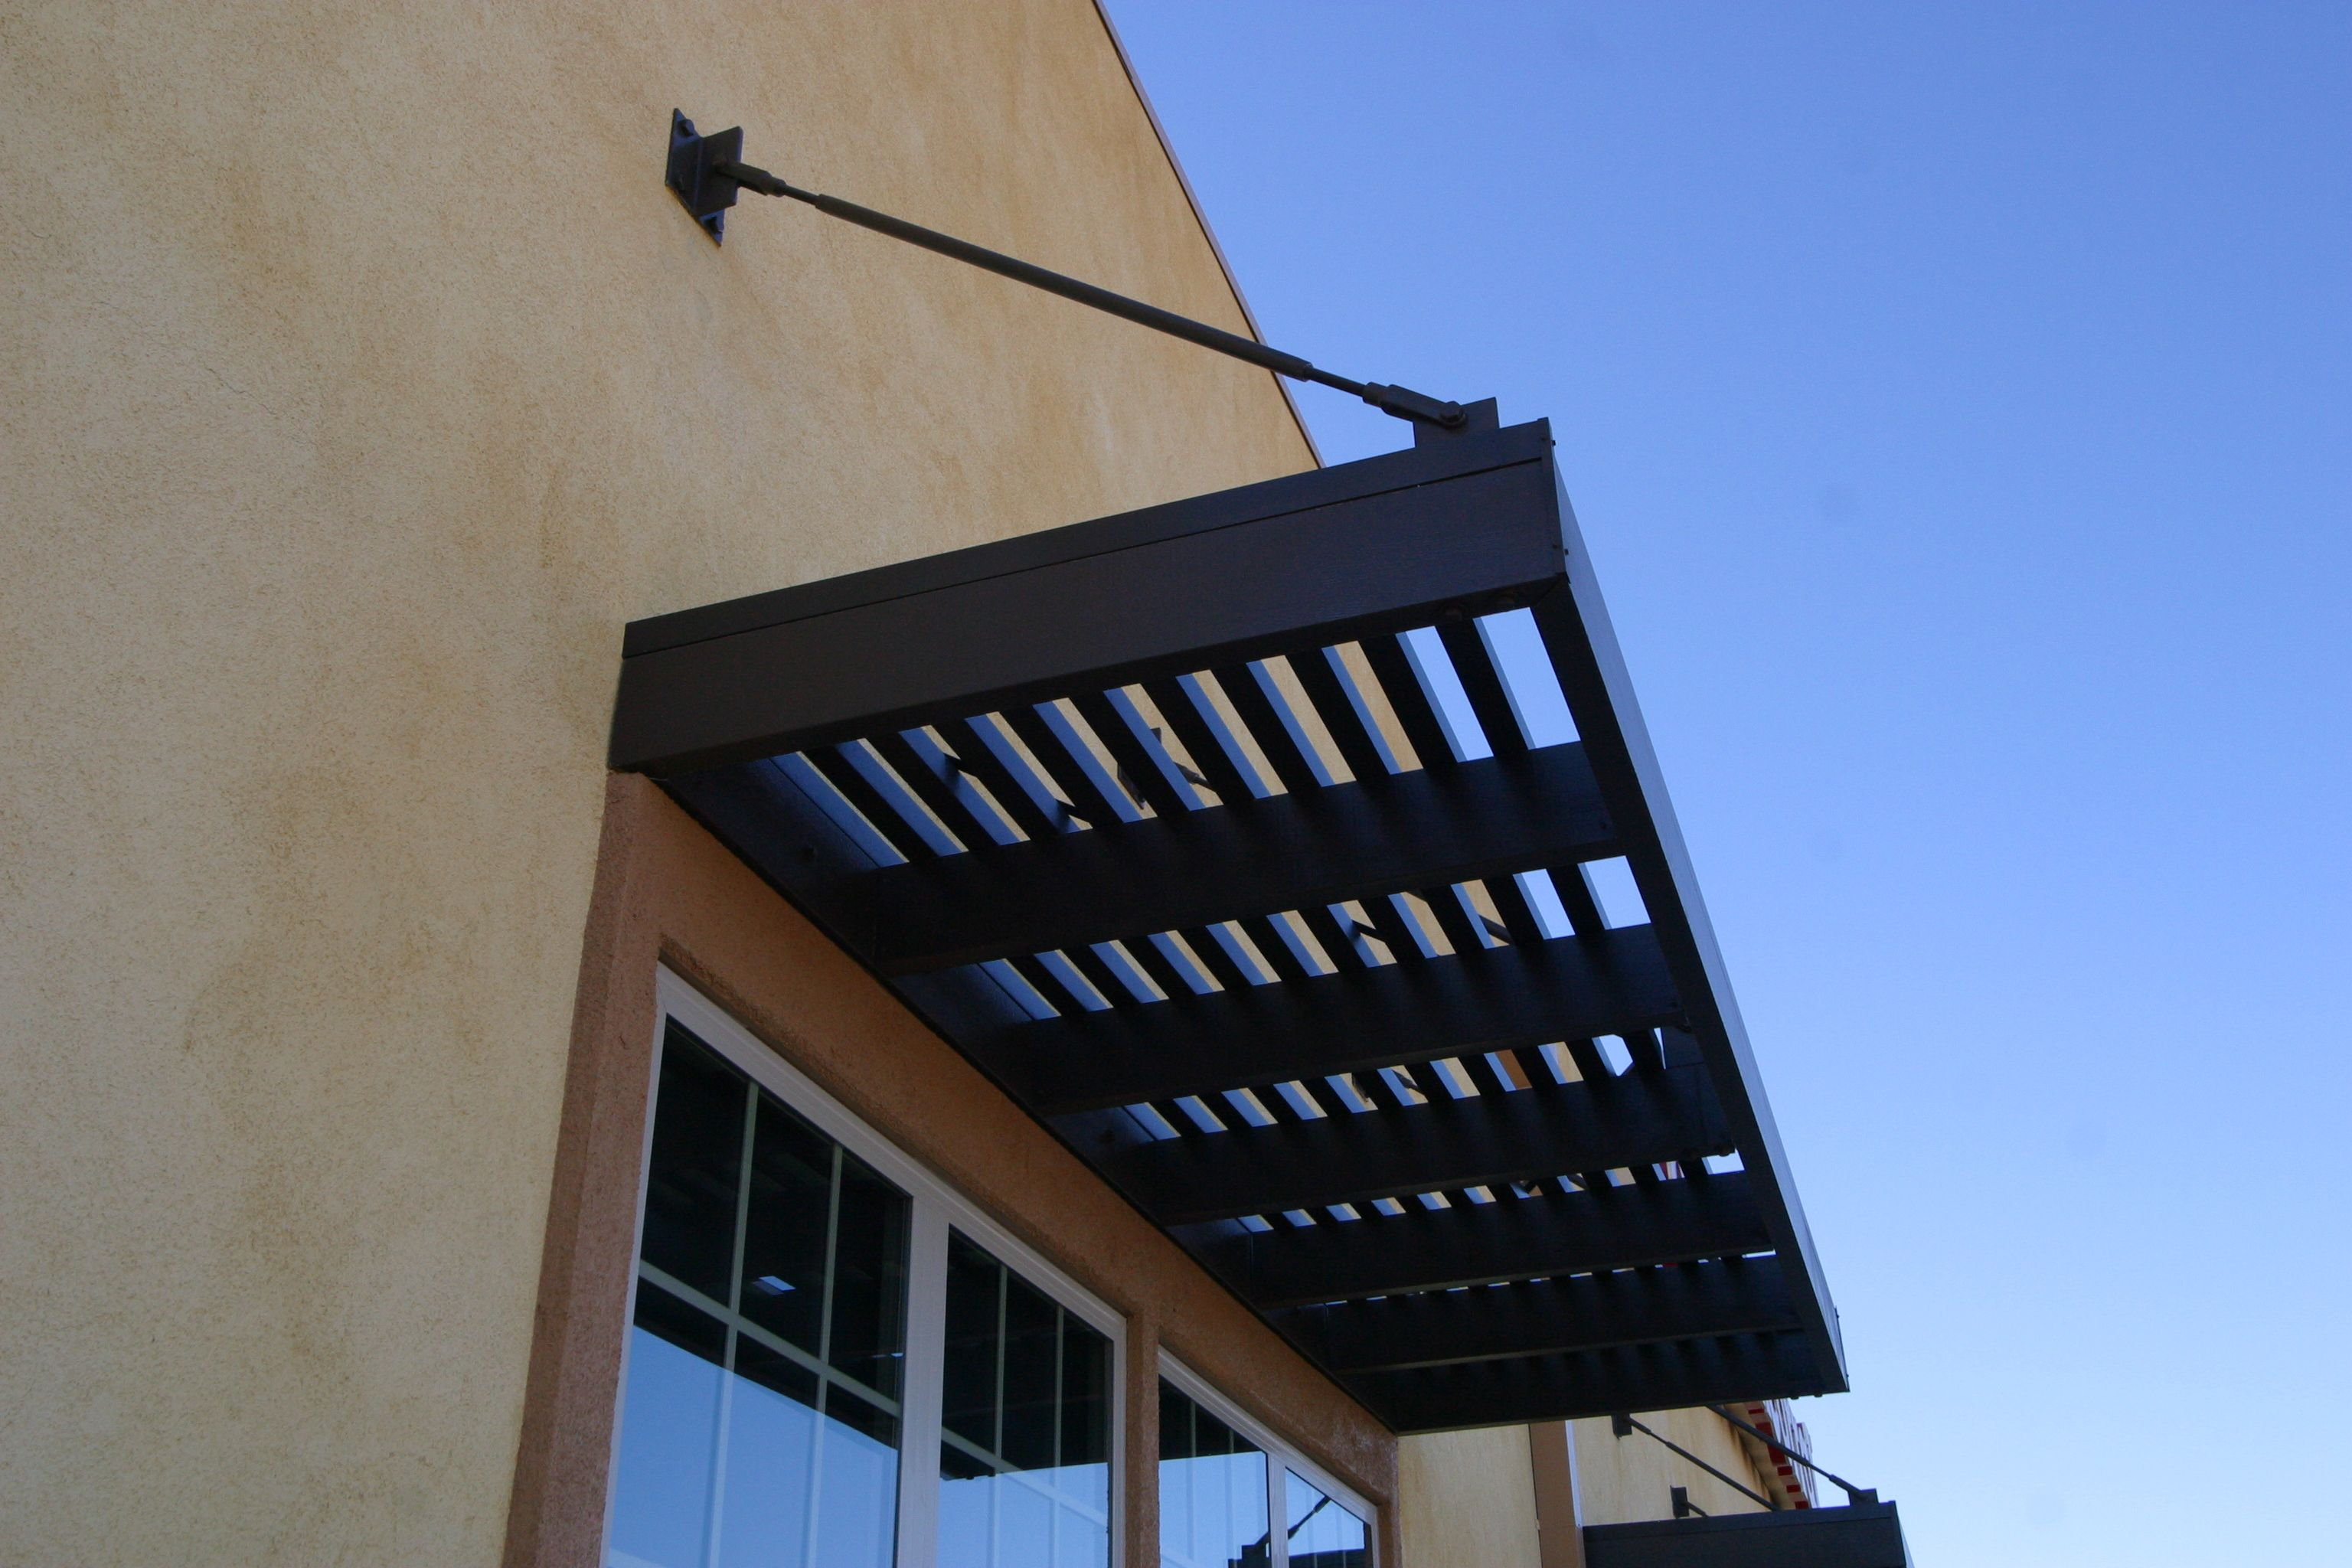 Sun City Awning - Suspended Window Awning Image | ProView